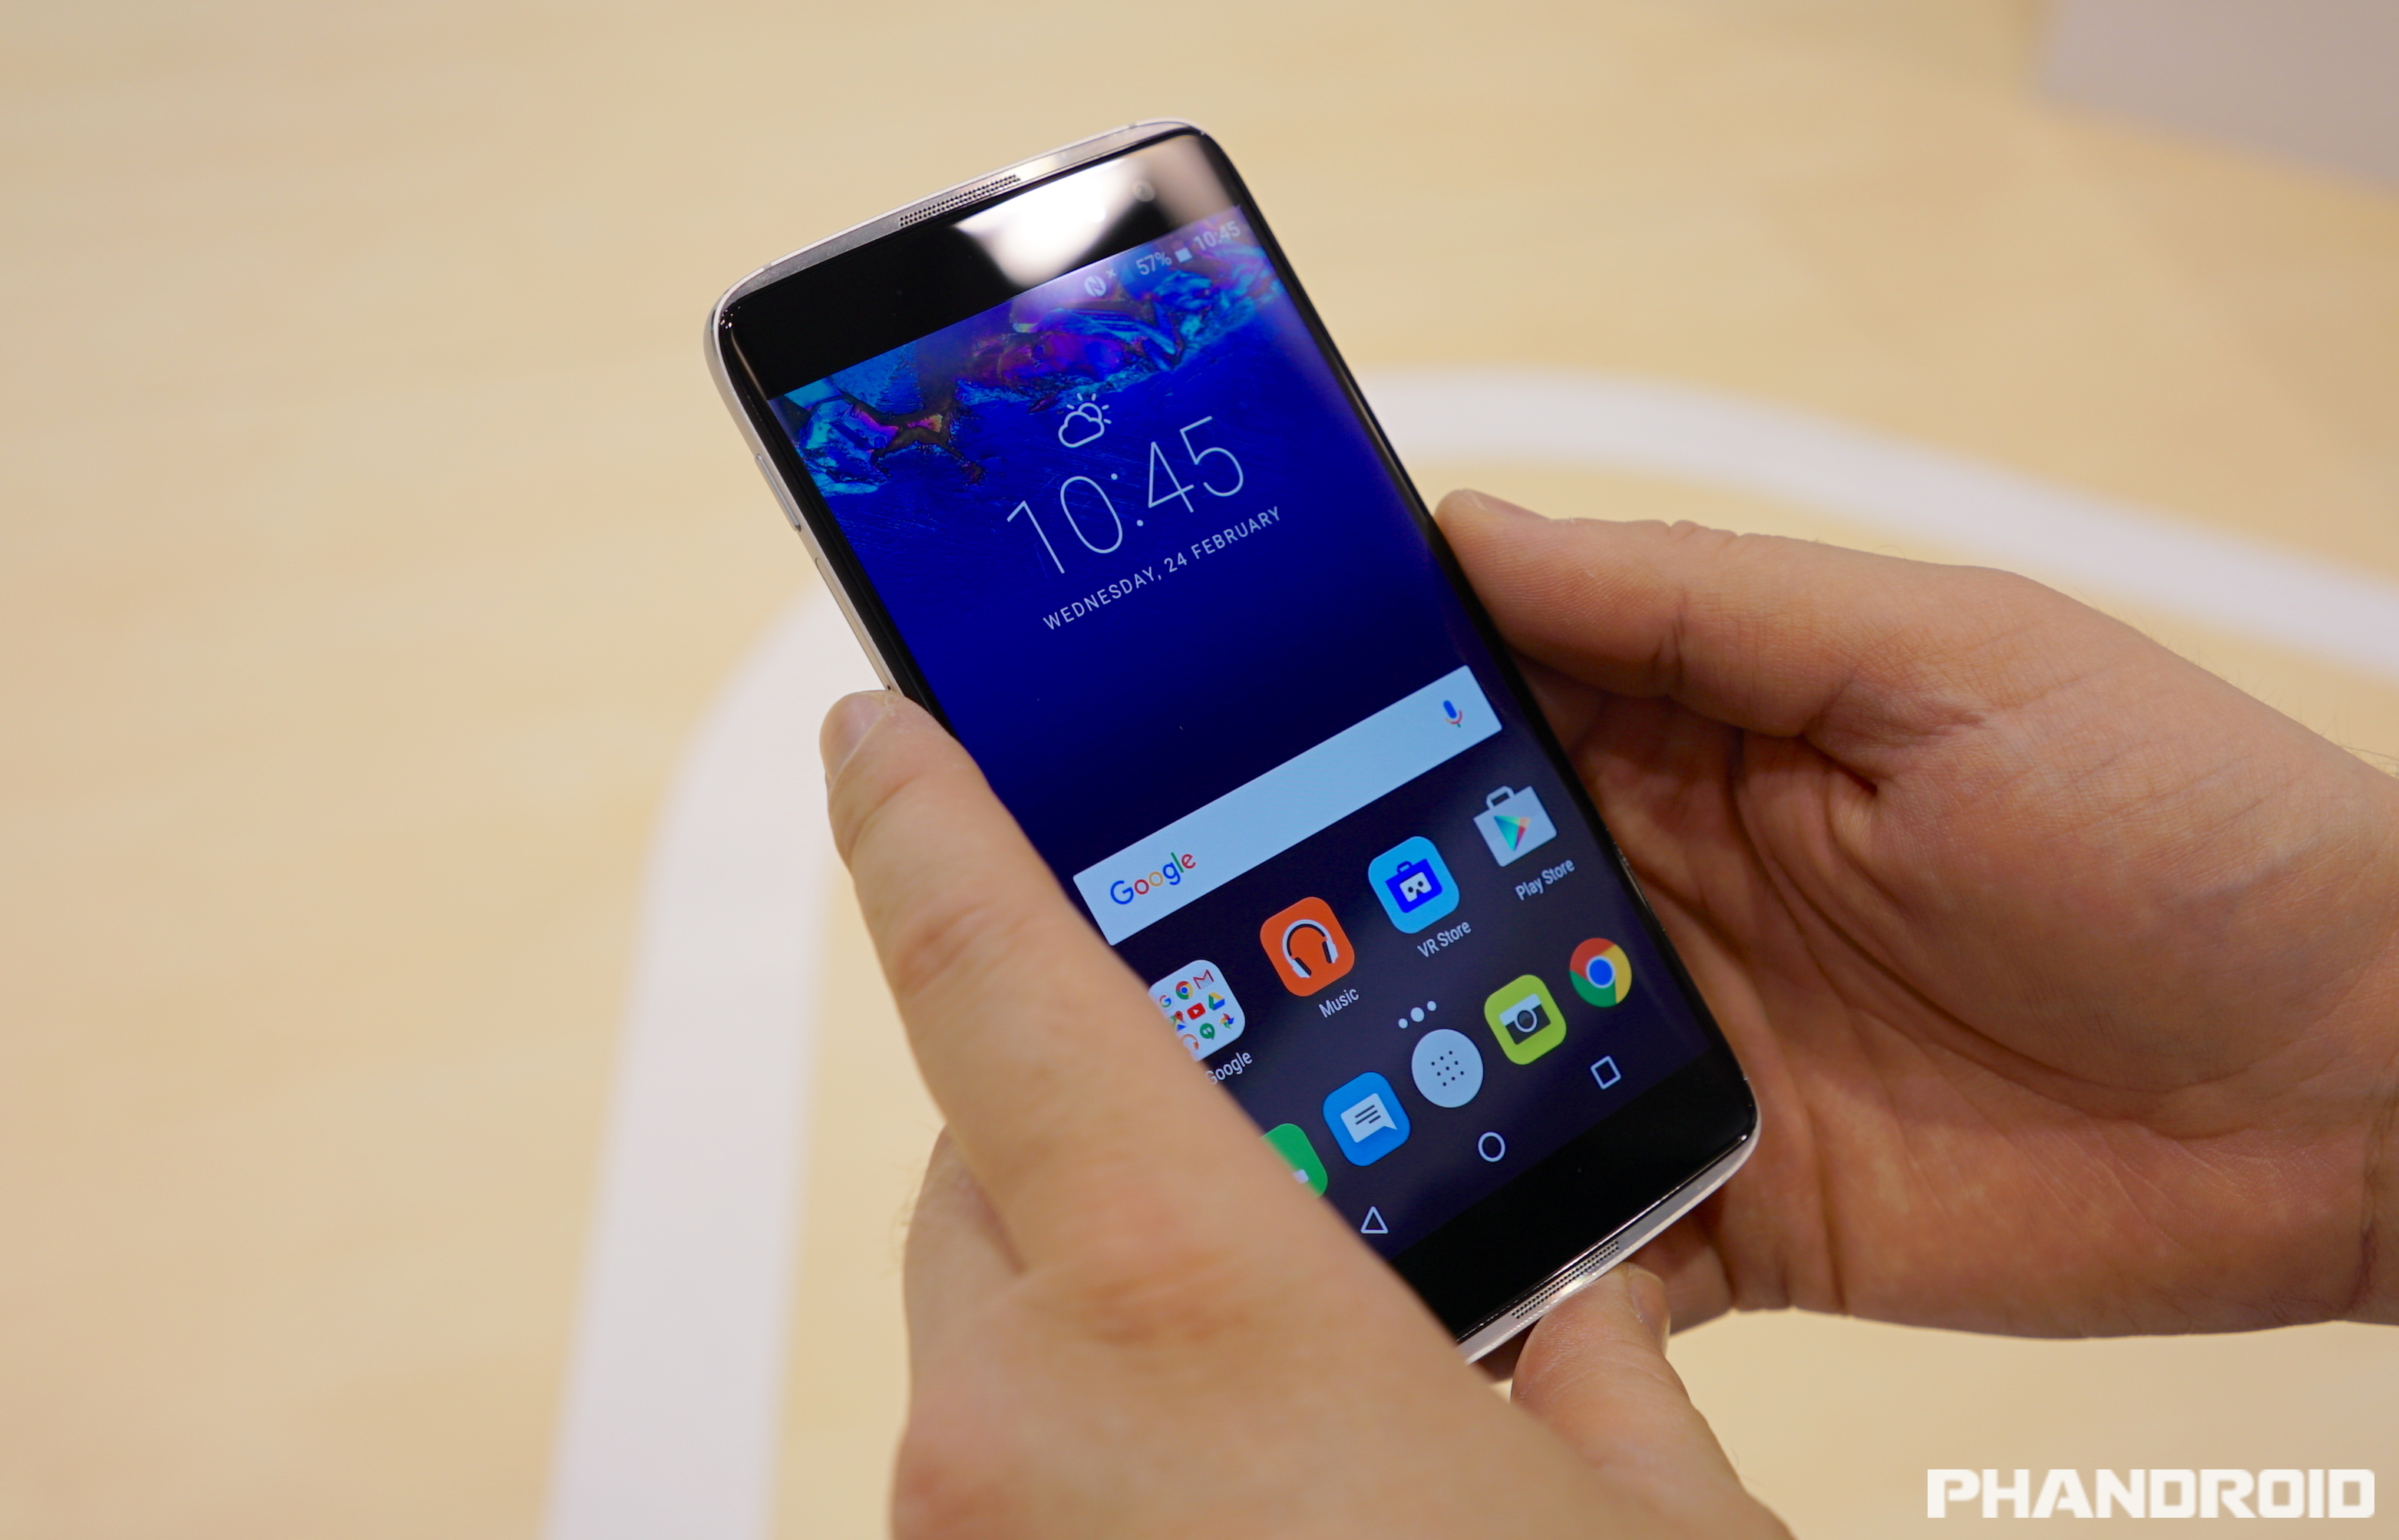 Alcatel Idol 4S VR bundle available July 15th for $350